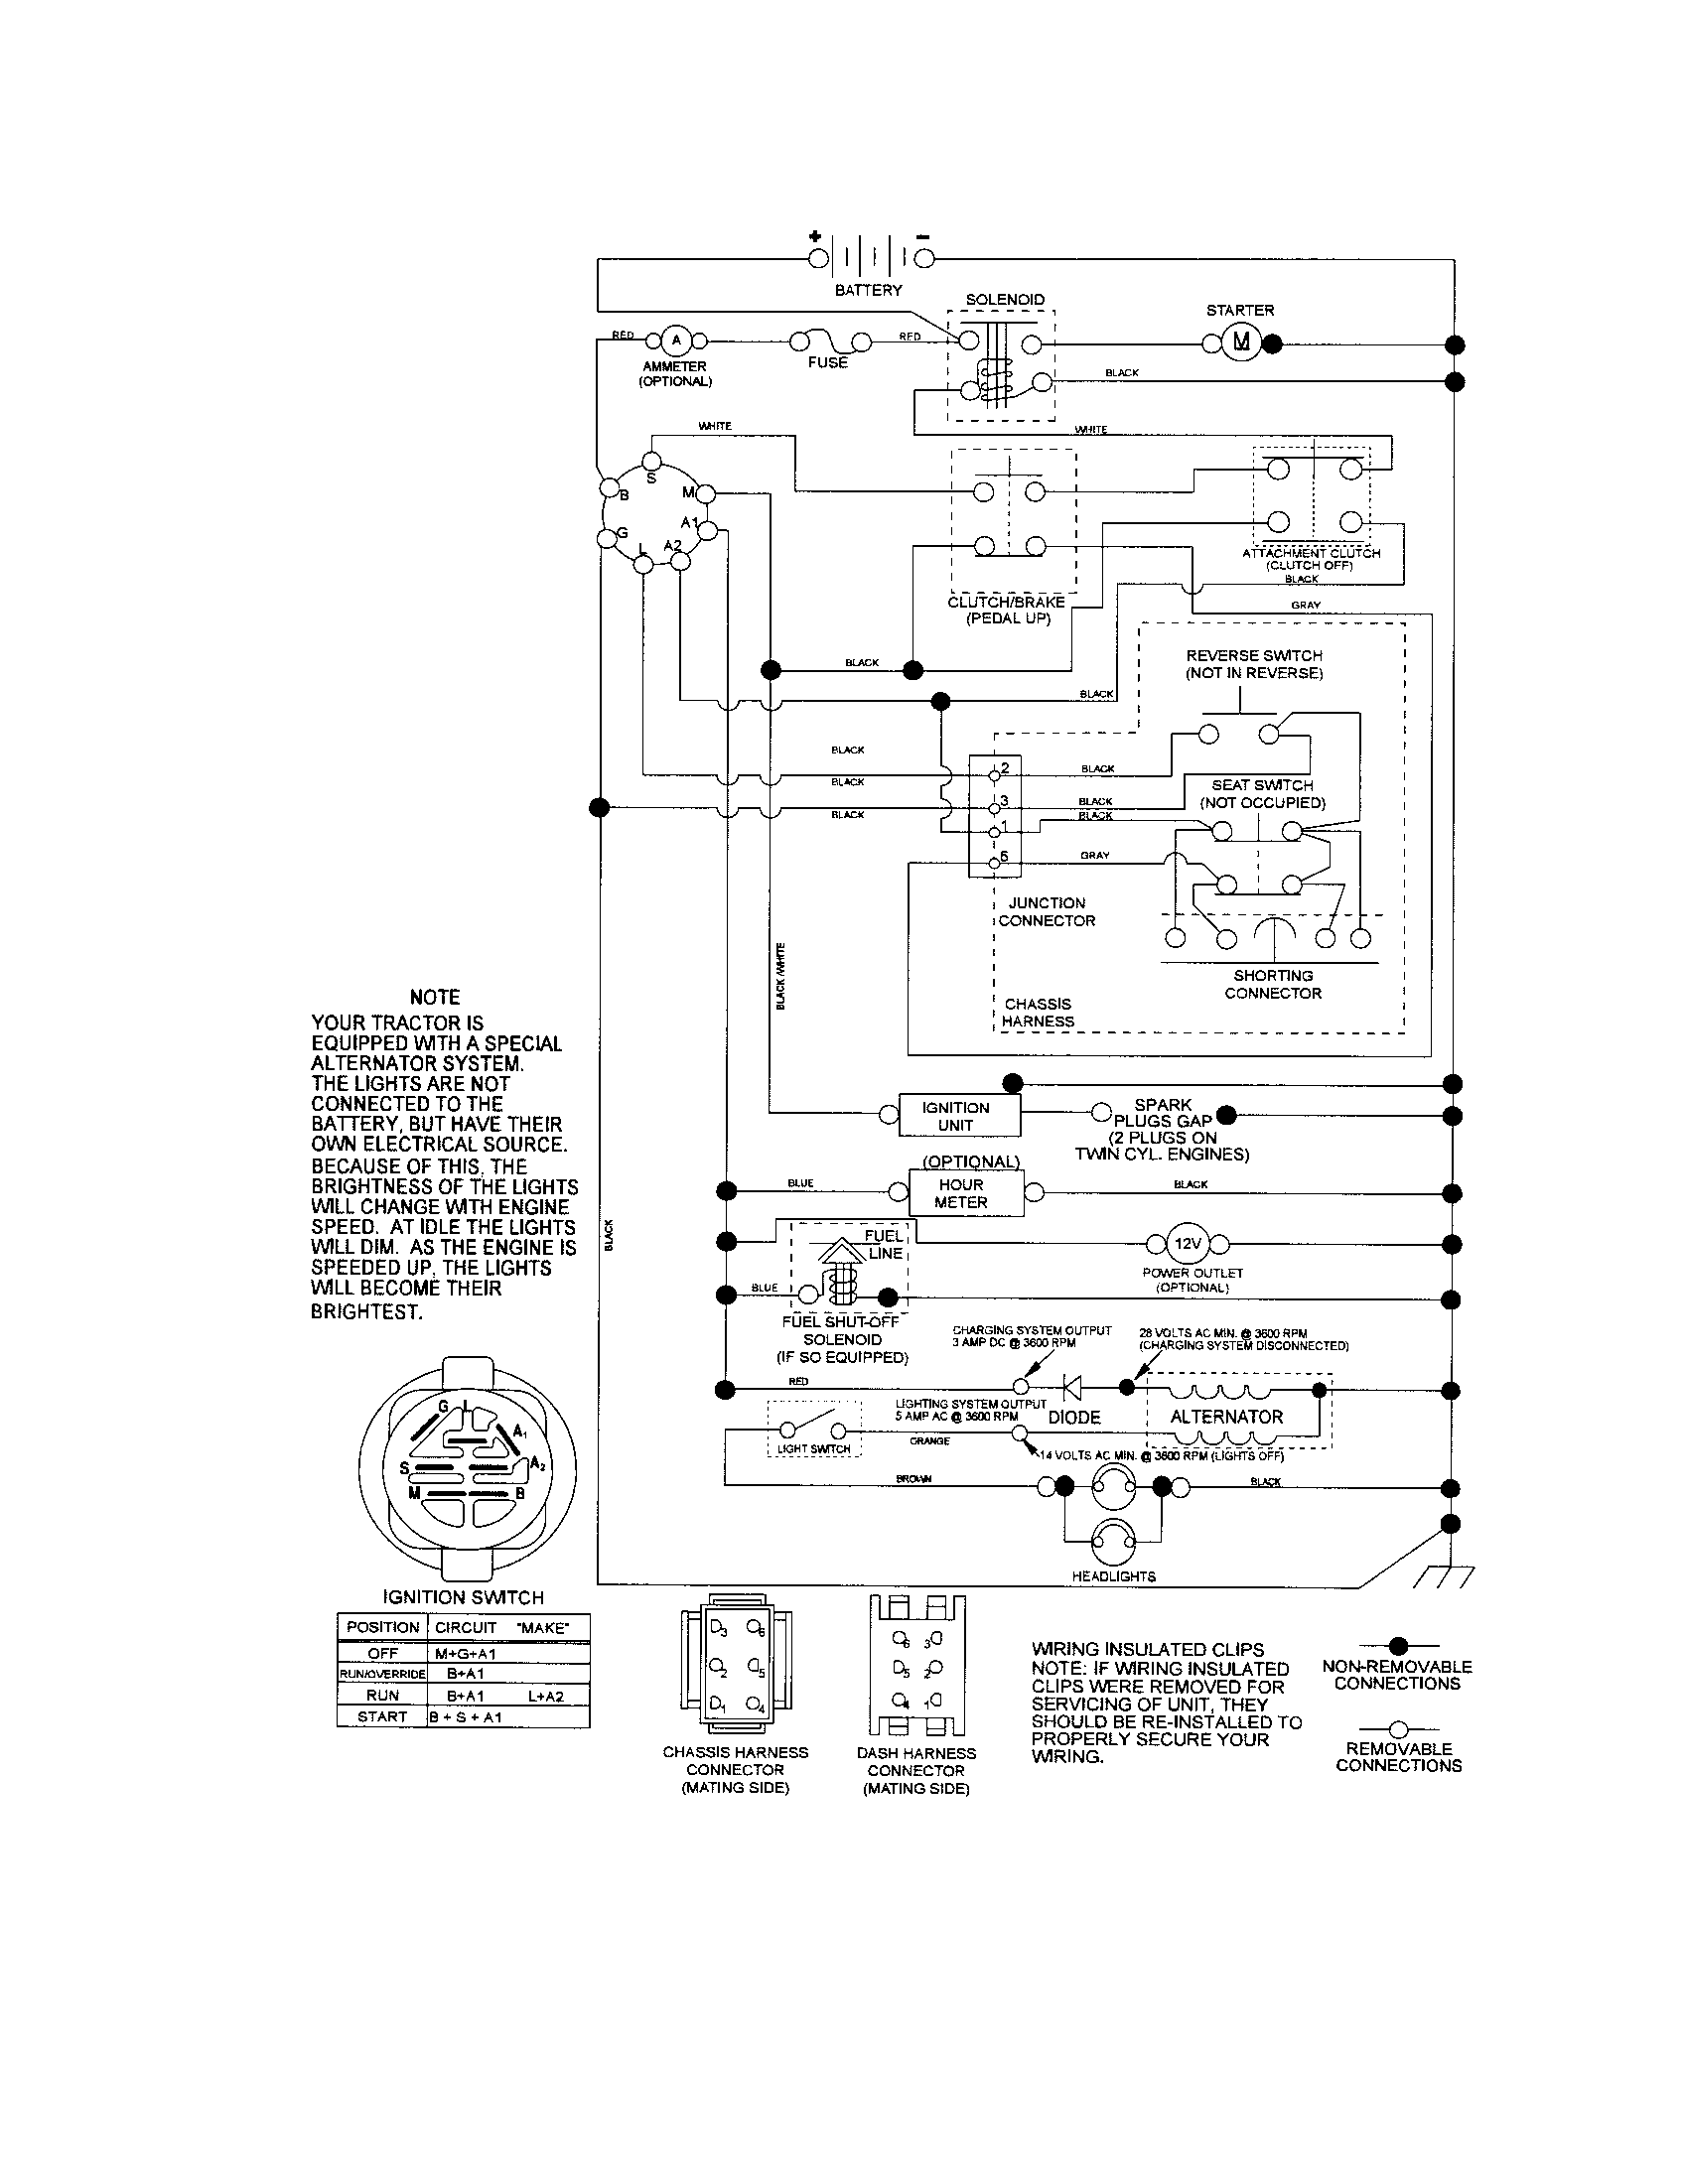 Craftsman Tractor Belt Diagram Craftsman Tractor Transaxle Parts Model 917289180 Searspartsdi Craftsman Riding Lawn Mower Riding Lawn Mowers Lawn Tractor